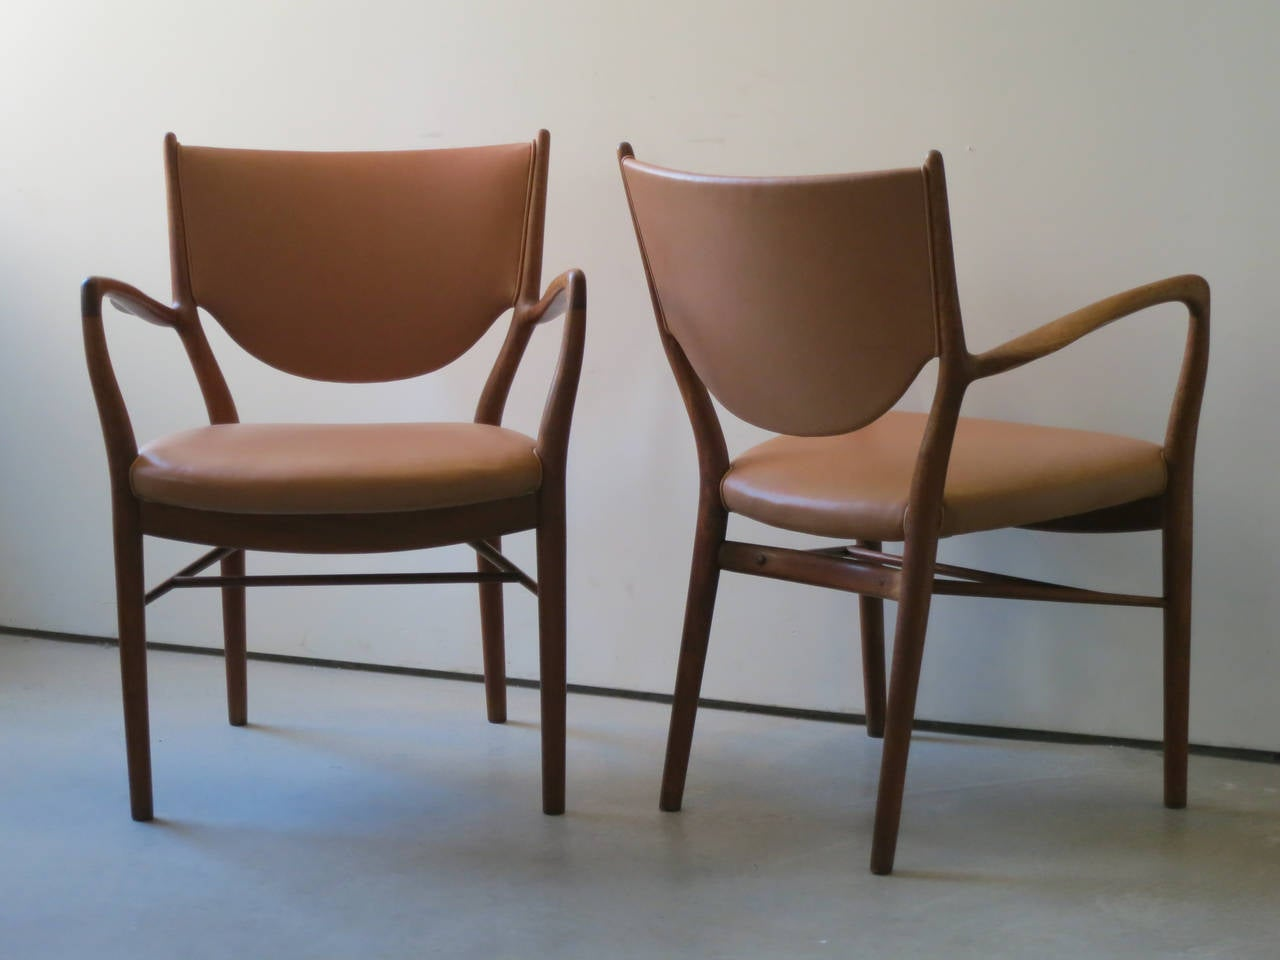 Danish Pair of NV46 Chairs by Finn Juhl in Teak with Natural Leather Upholstery For Sale